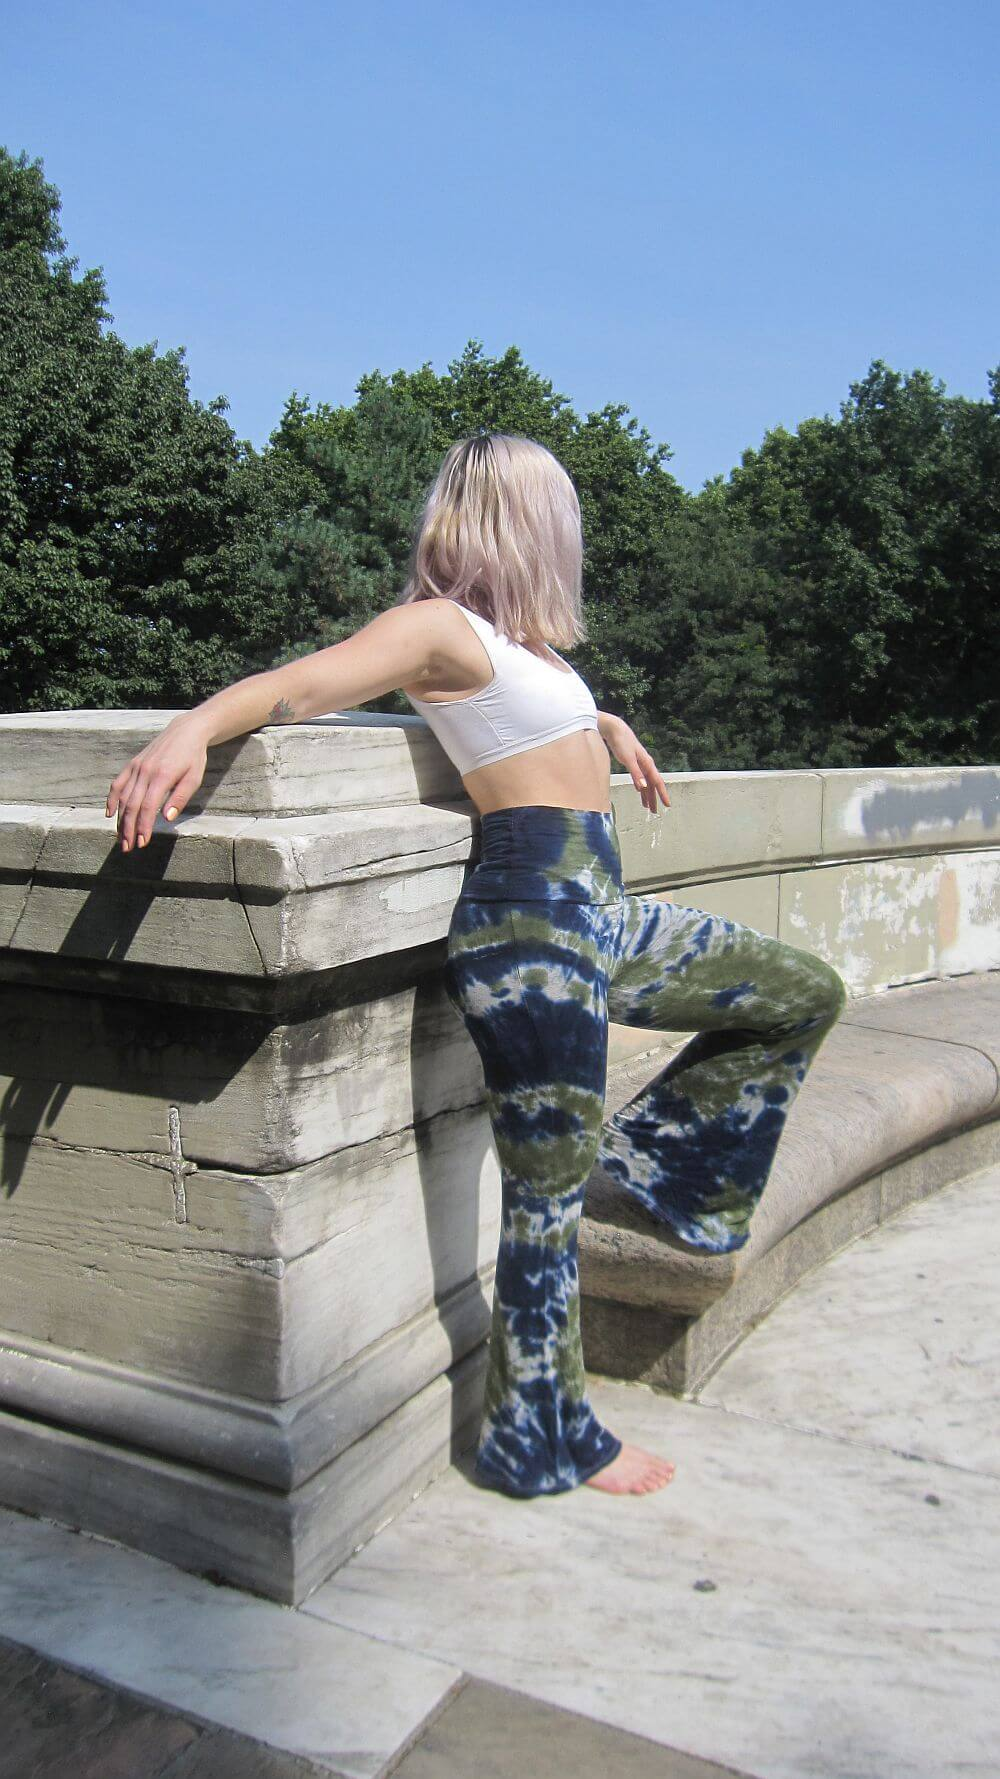 Designs by Agi, Agi Anderson, tie dye yoga pants.